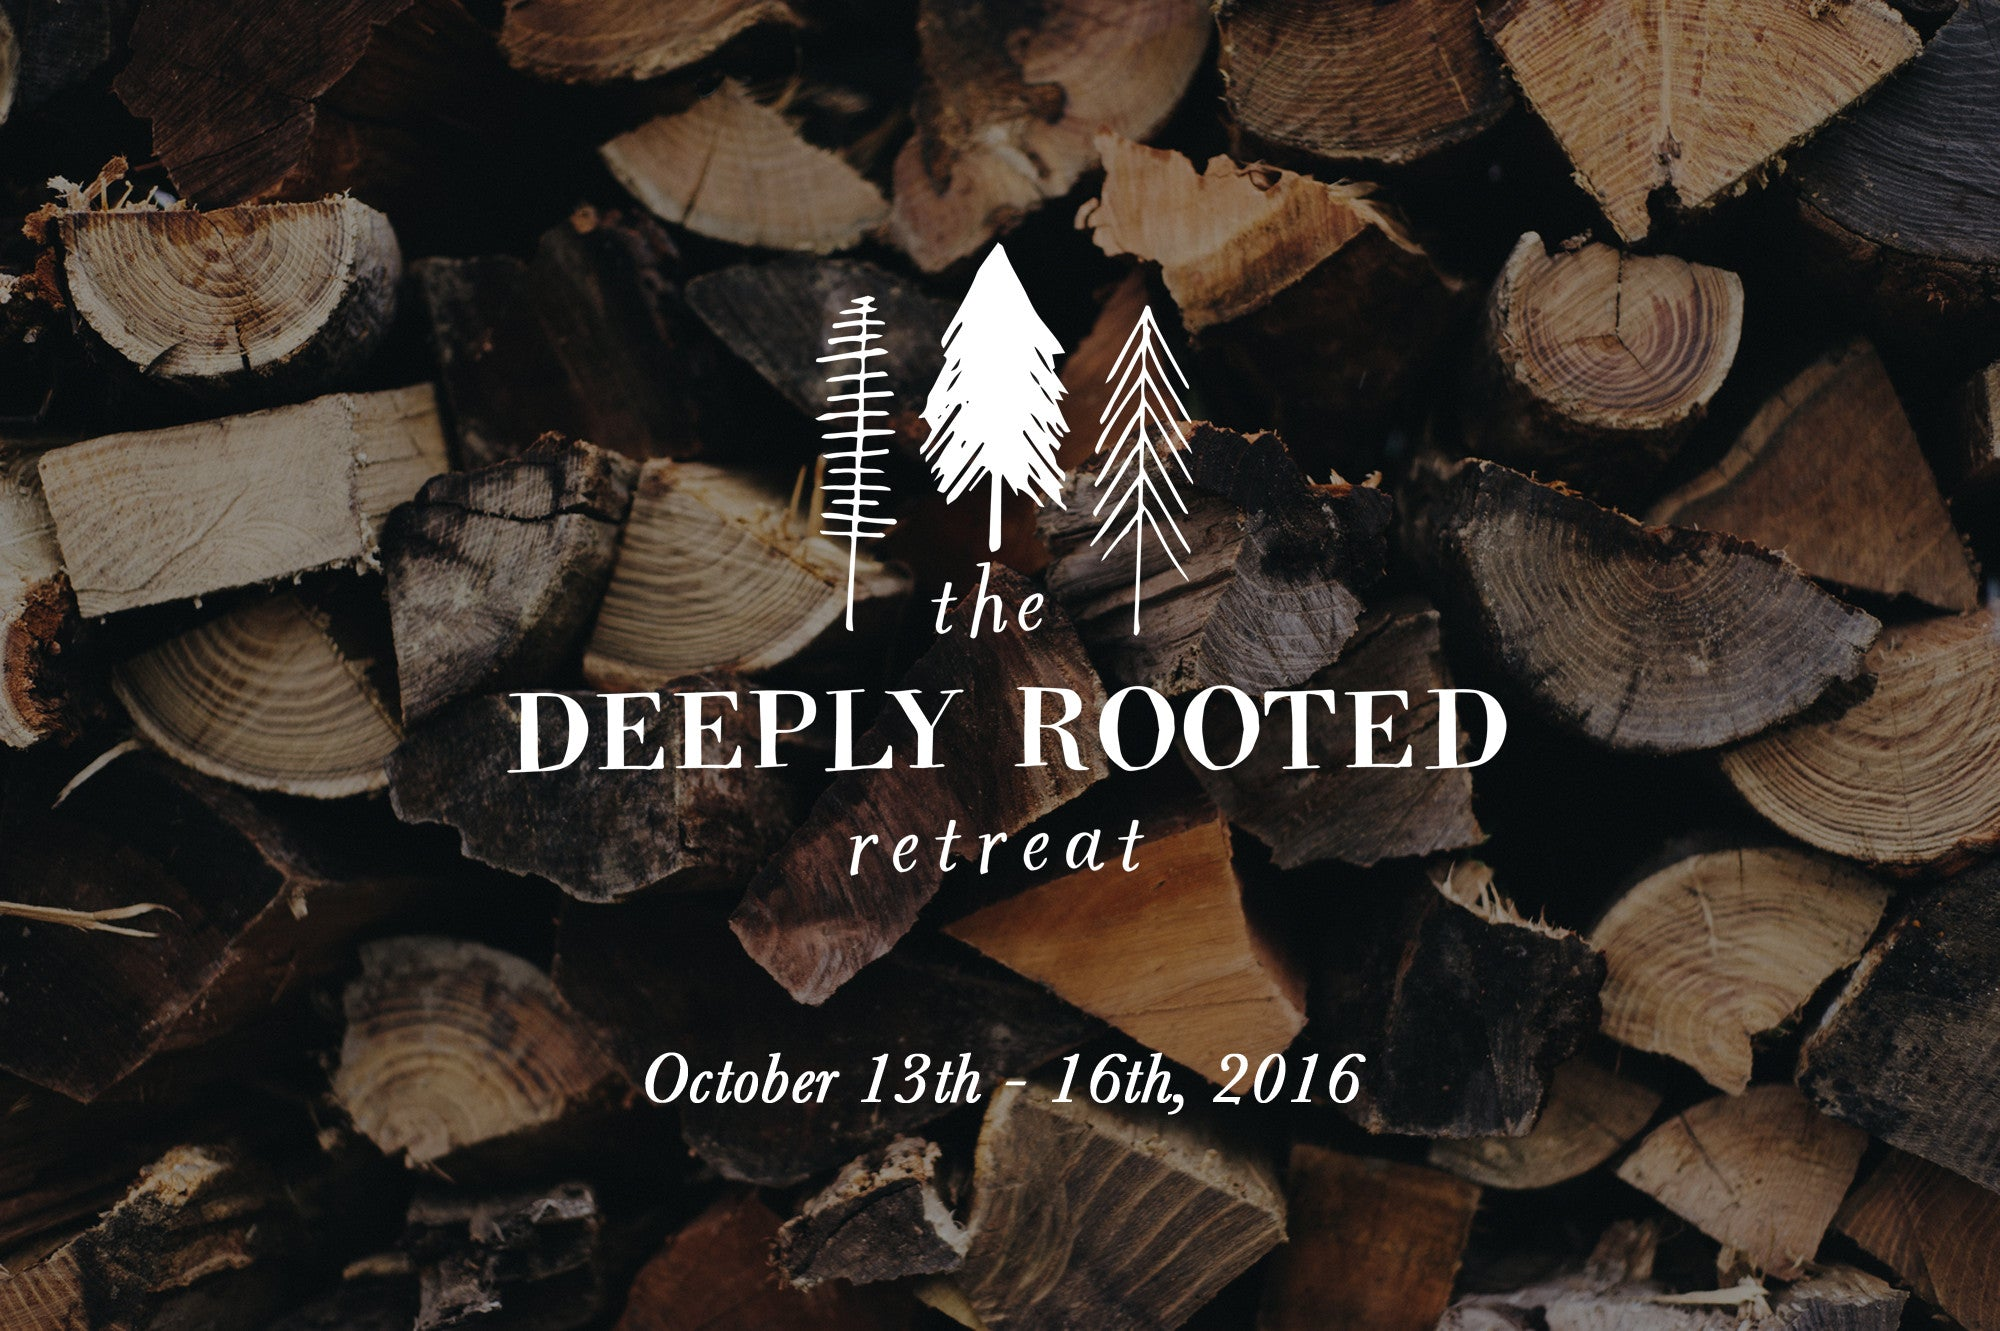 Announcing the Deeply Rooted Retreat